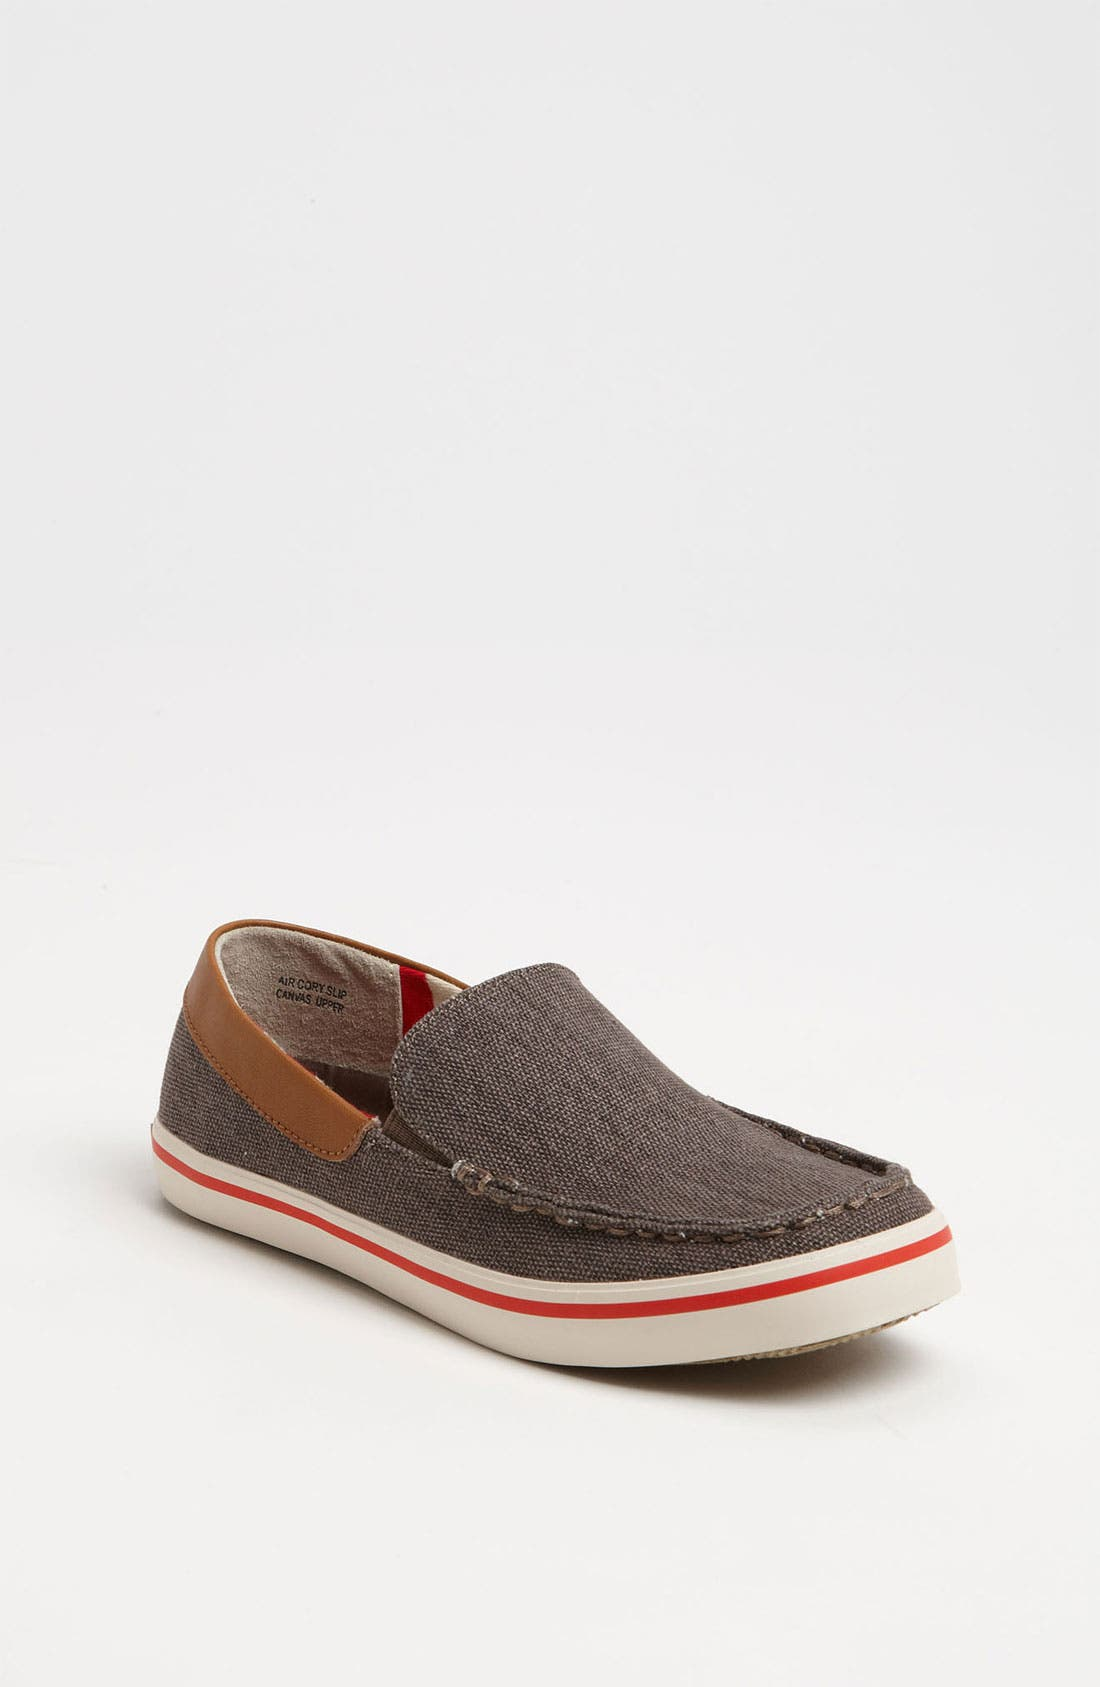 Alternate Image 1 Selected - Cole Haan 'Air Cory' Slip-On (Little Kid & Big Kid)